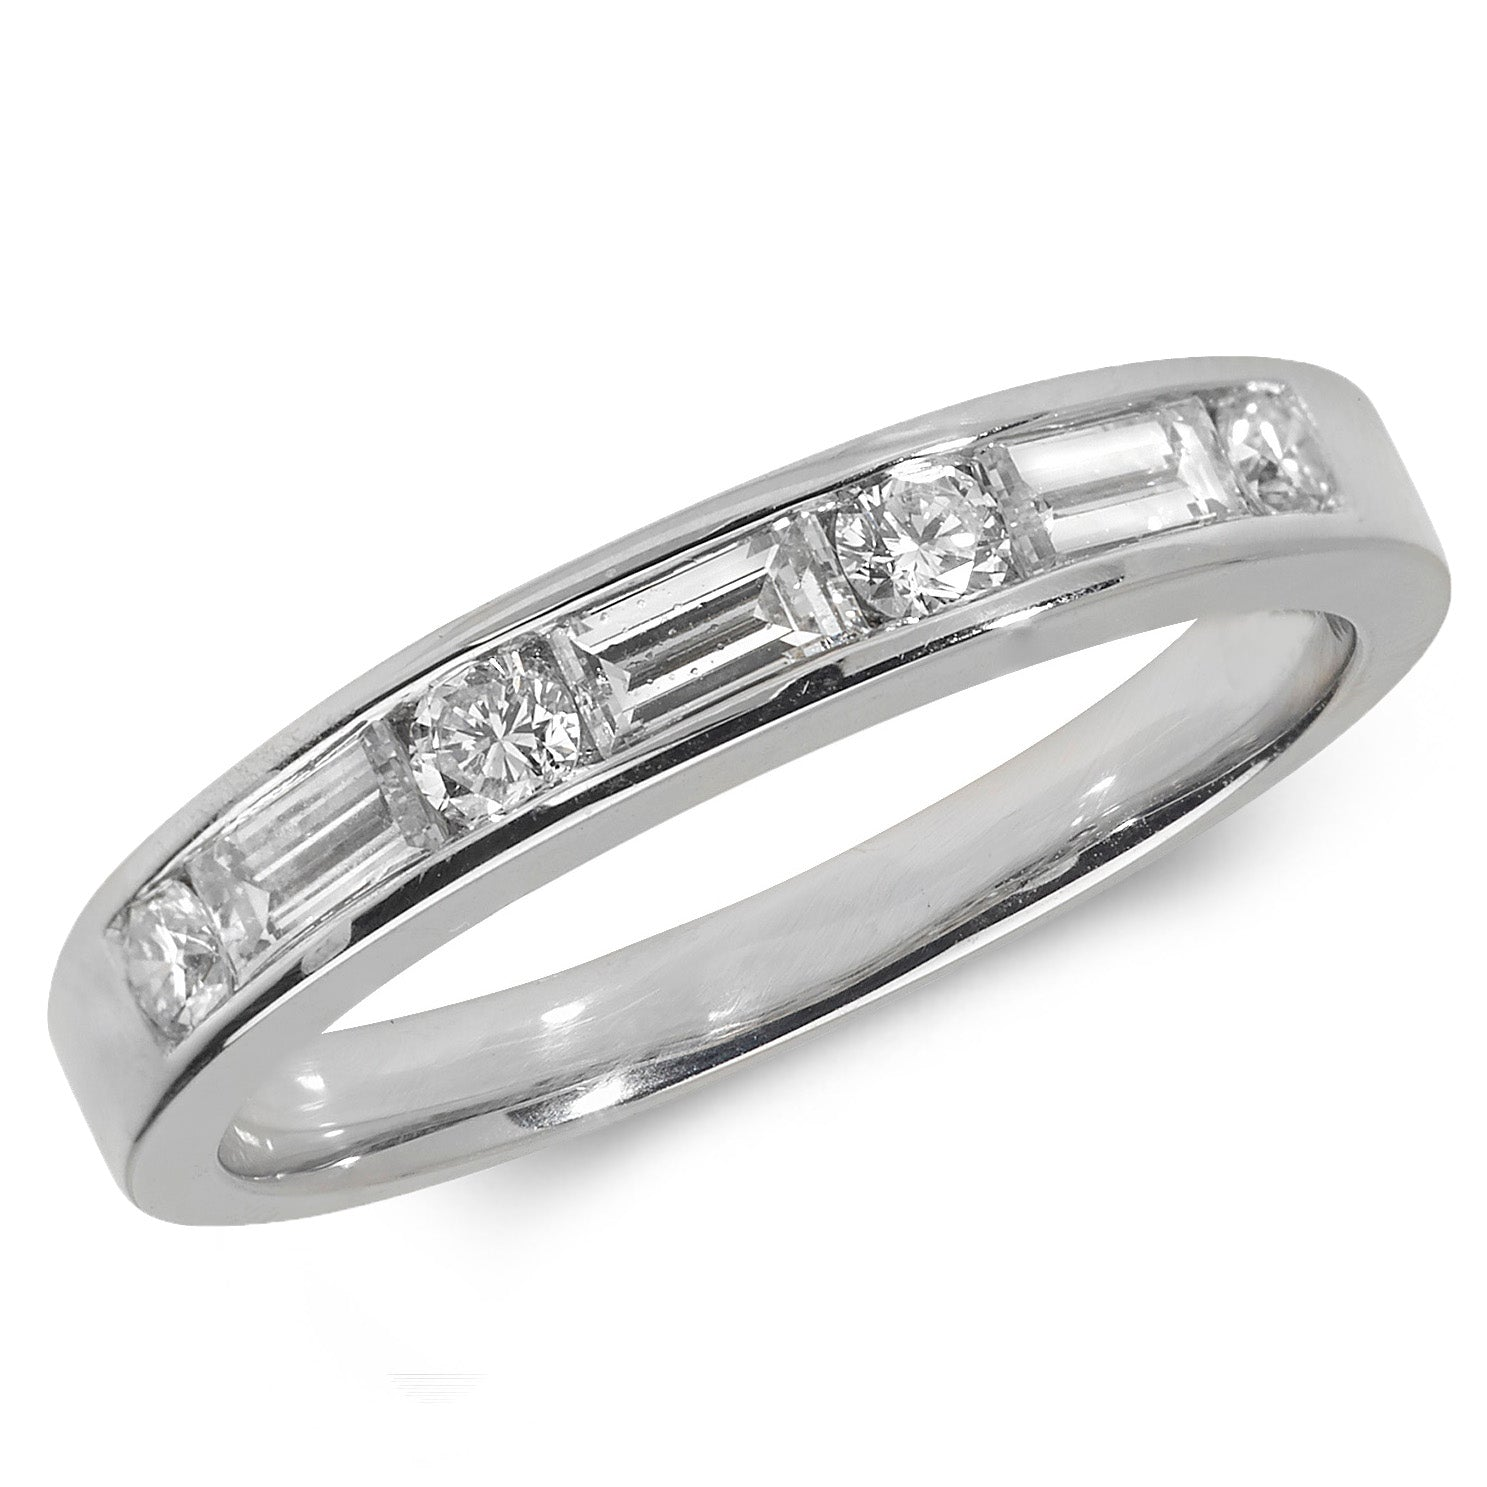 jewellers round and baguette diamond rings brilliant ring gold products campbell white eternity ireland jewellery dublin engagement